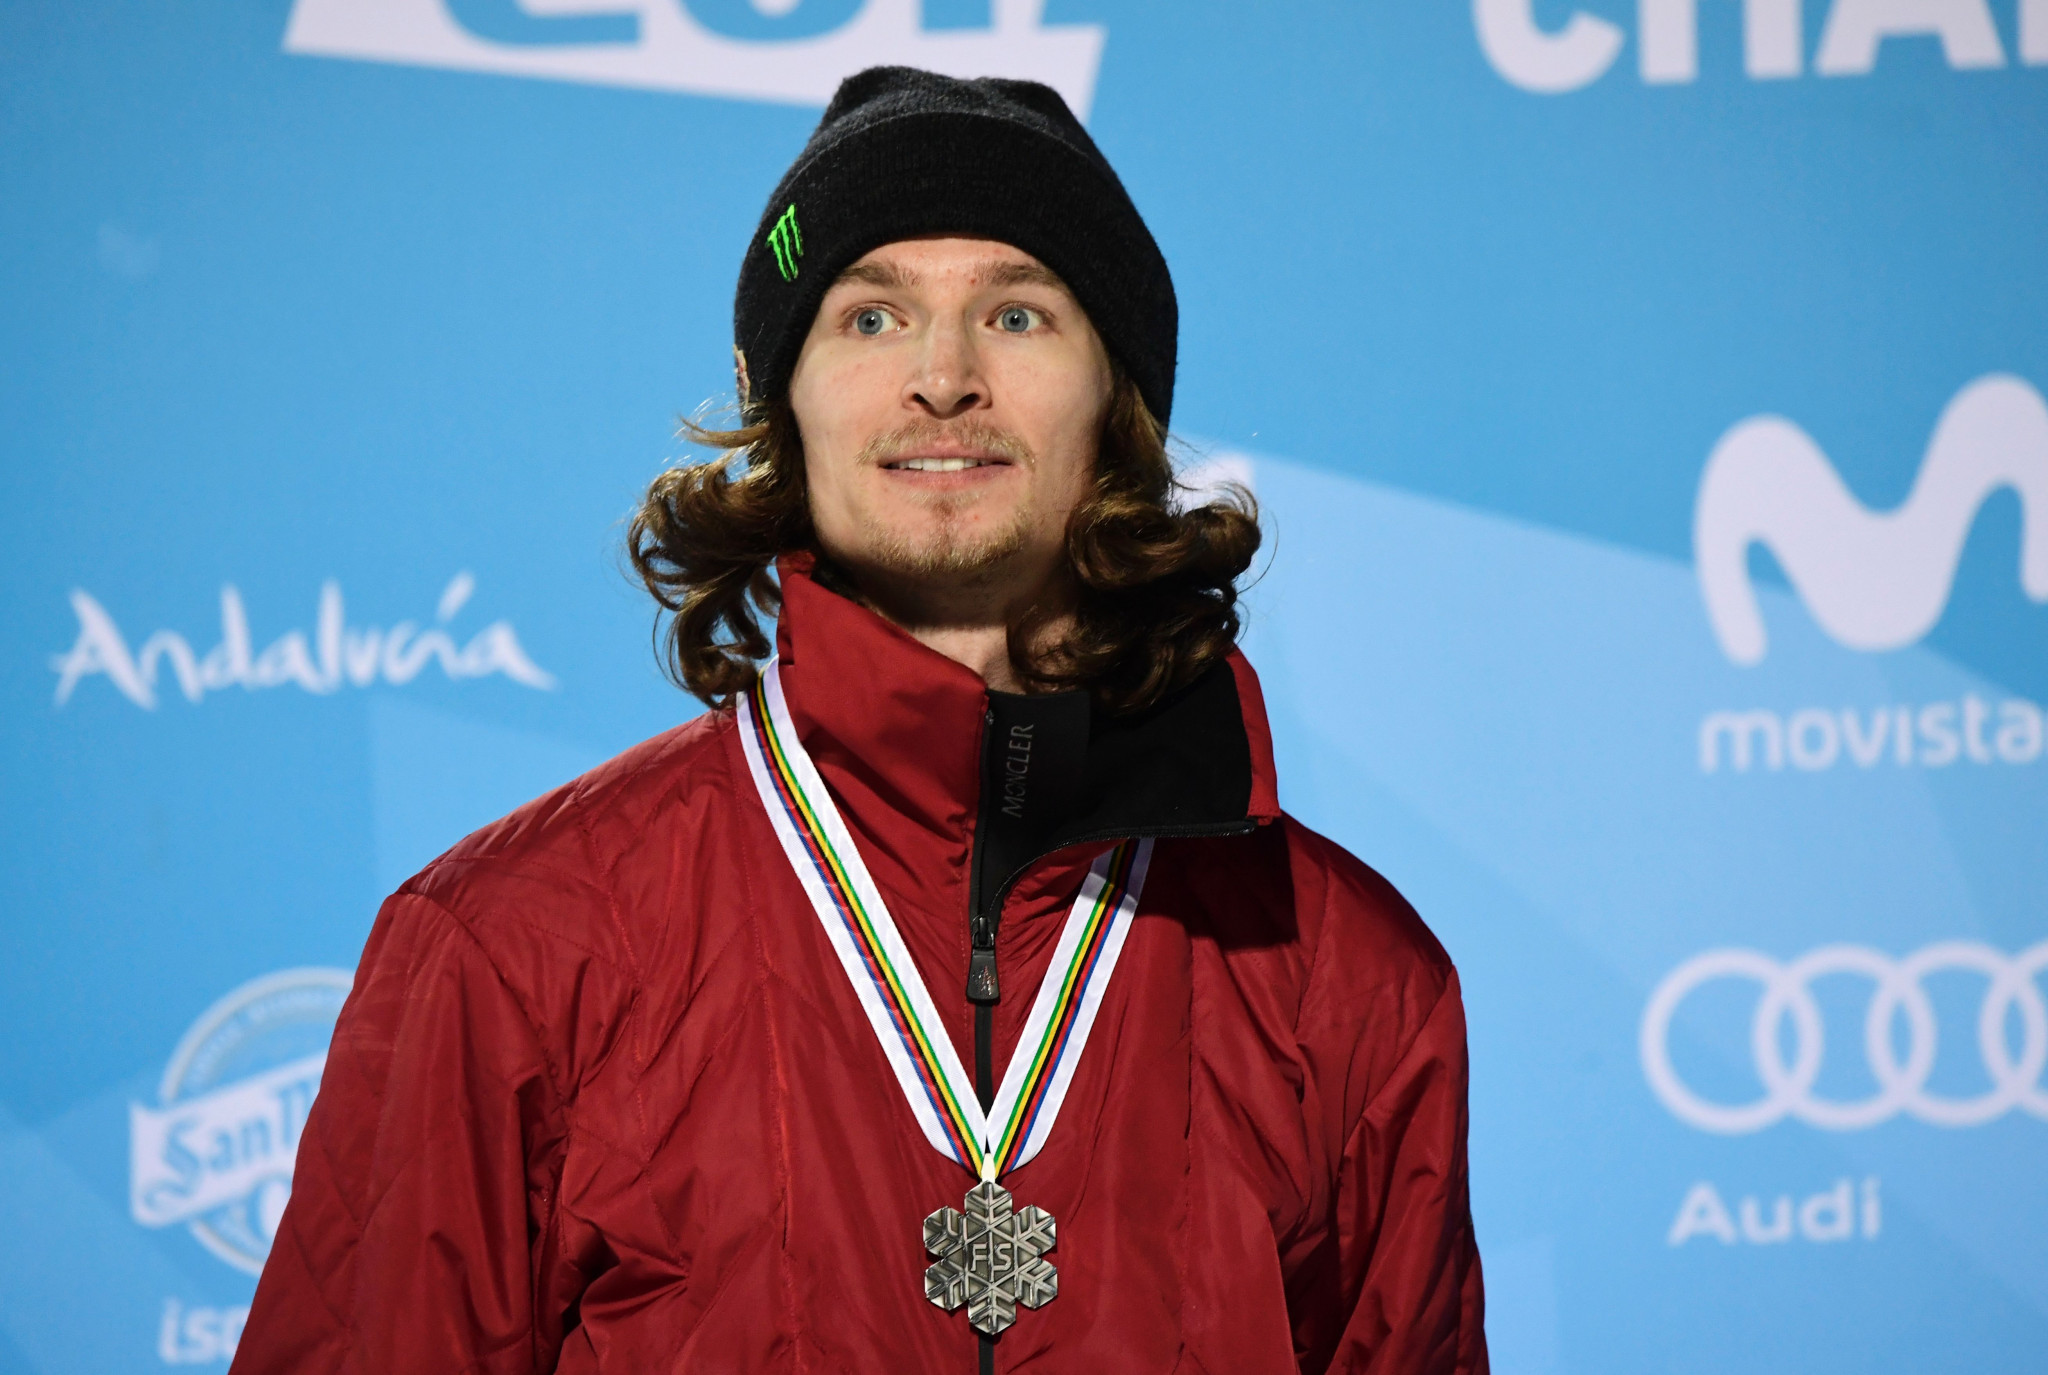 Sochi 2014 Olympic snowboarding champion Podladtchikov announces retirement